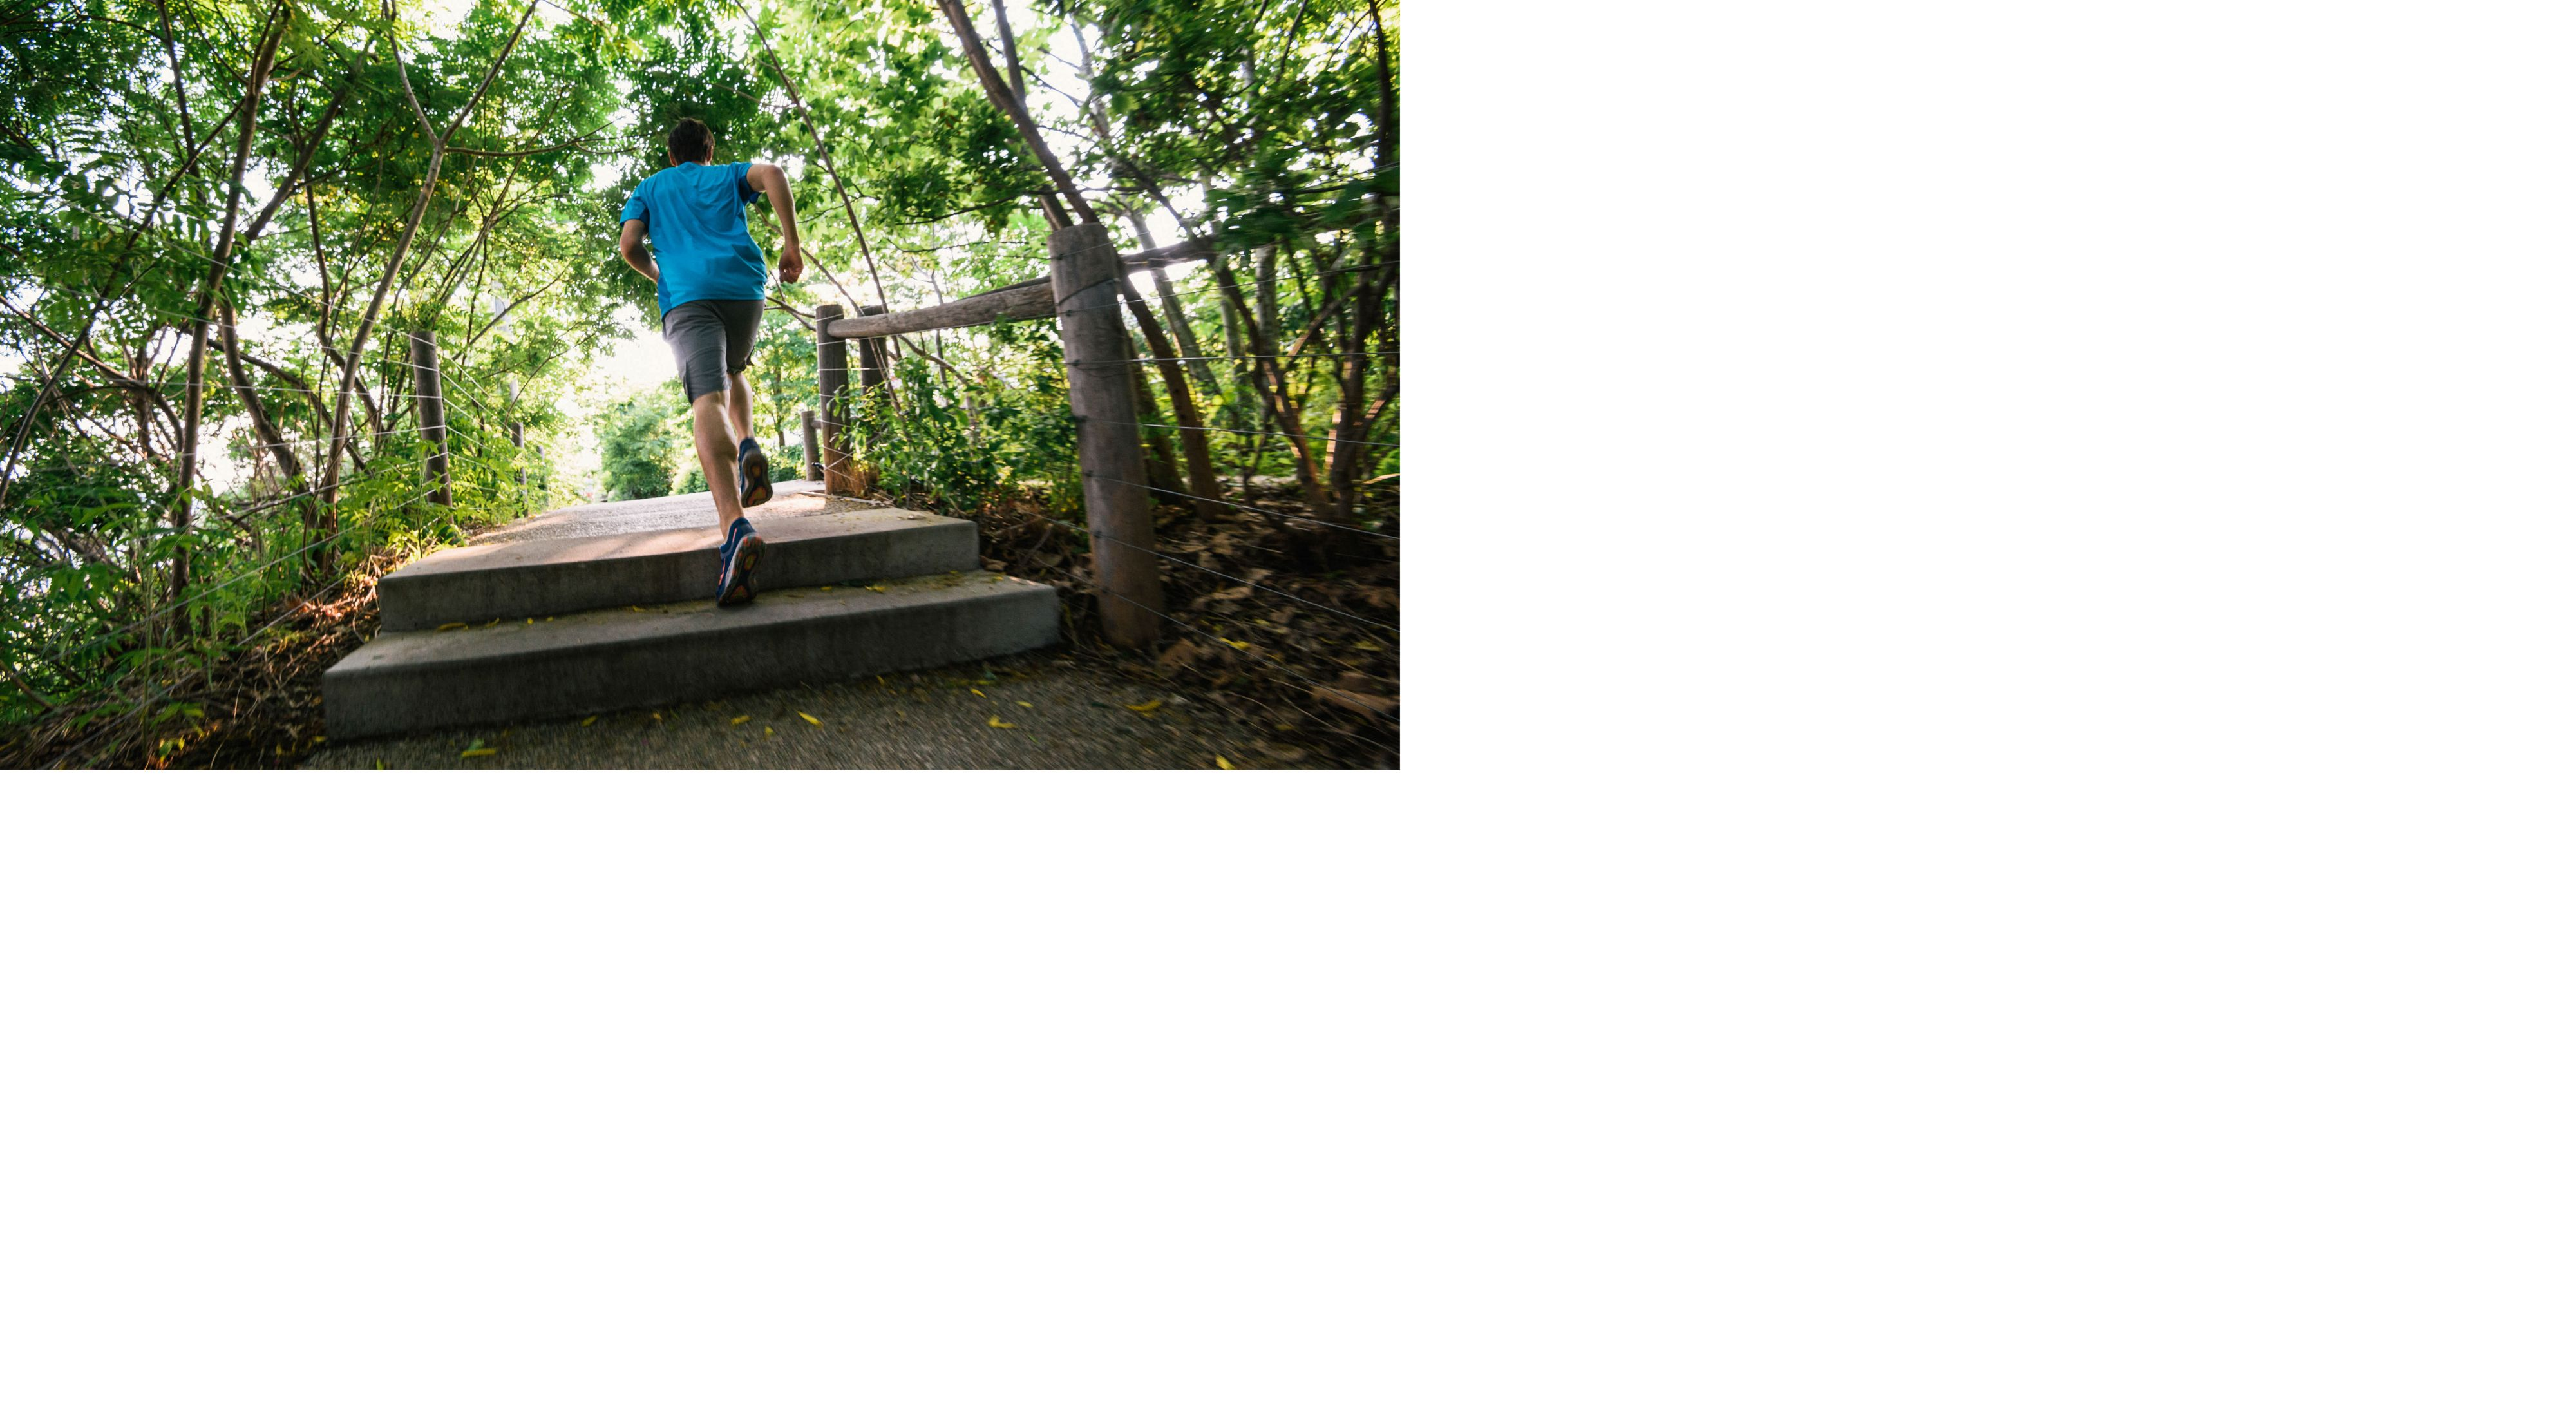 Runner in a blue shirt dashes over steps on a trail in